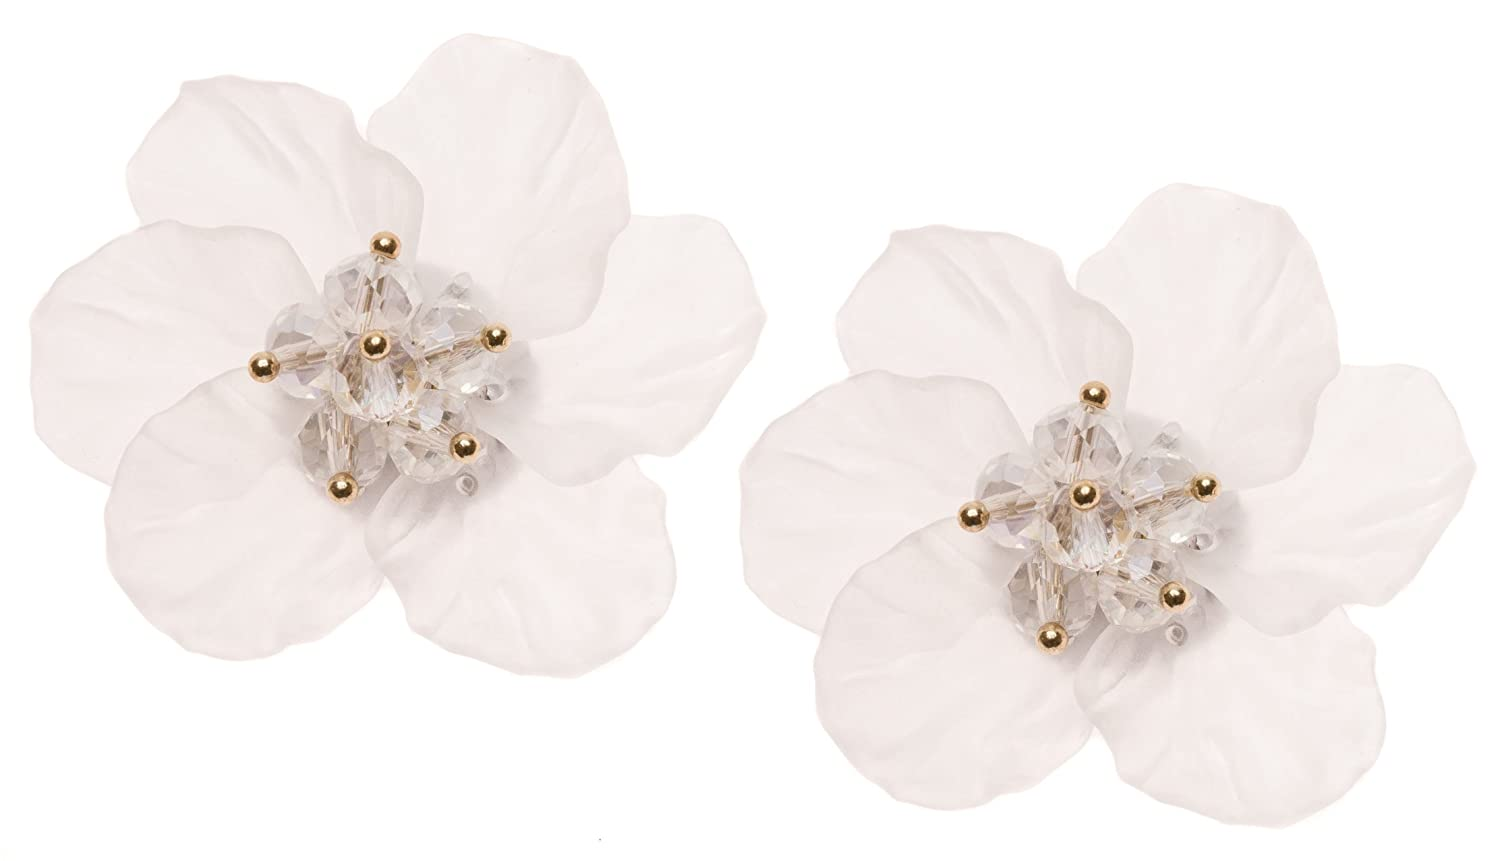 Flower Earrings White Color | Statement Ear Studs Bridal Wedding Jewelry Floral Design